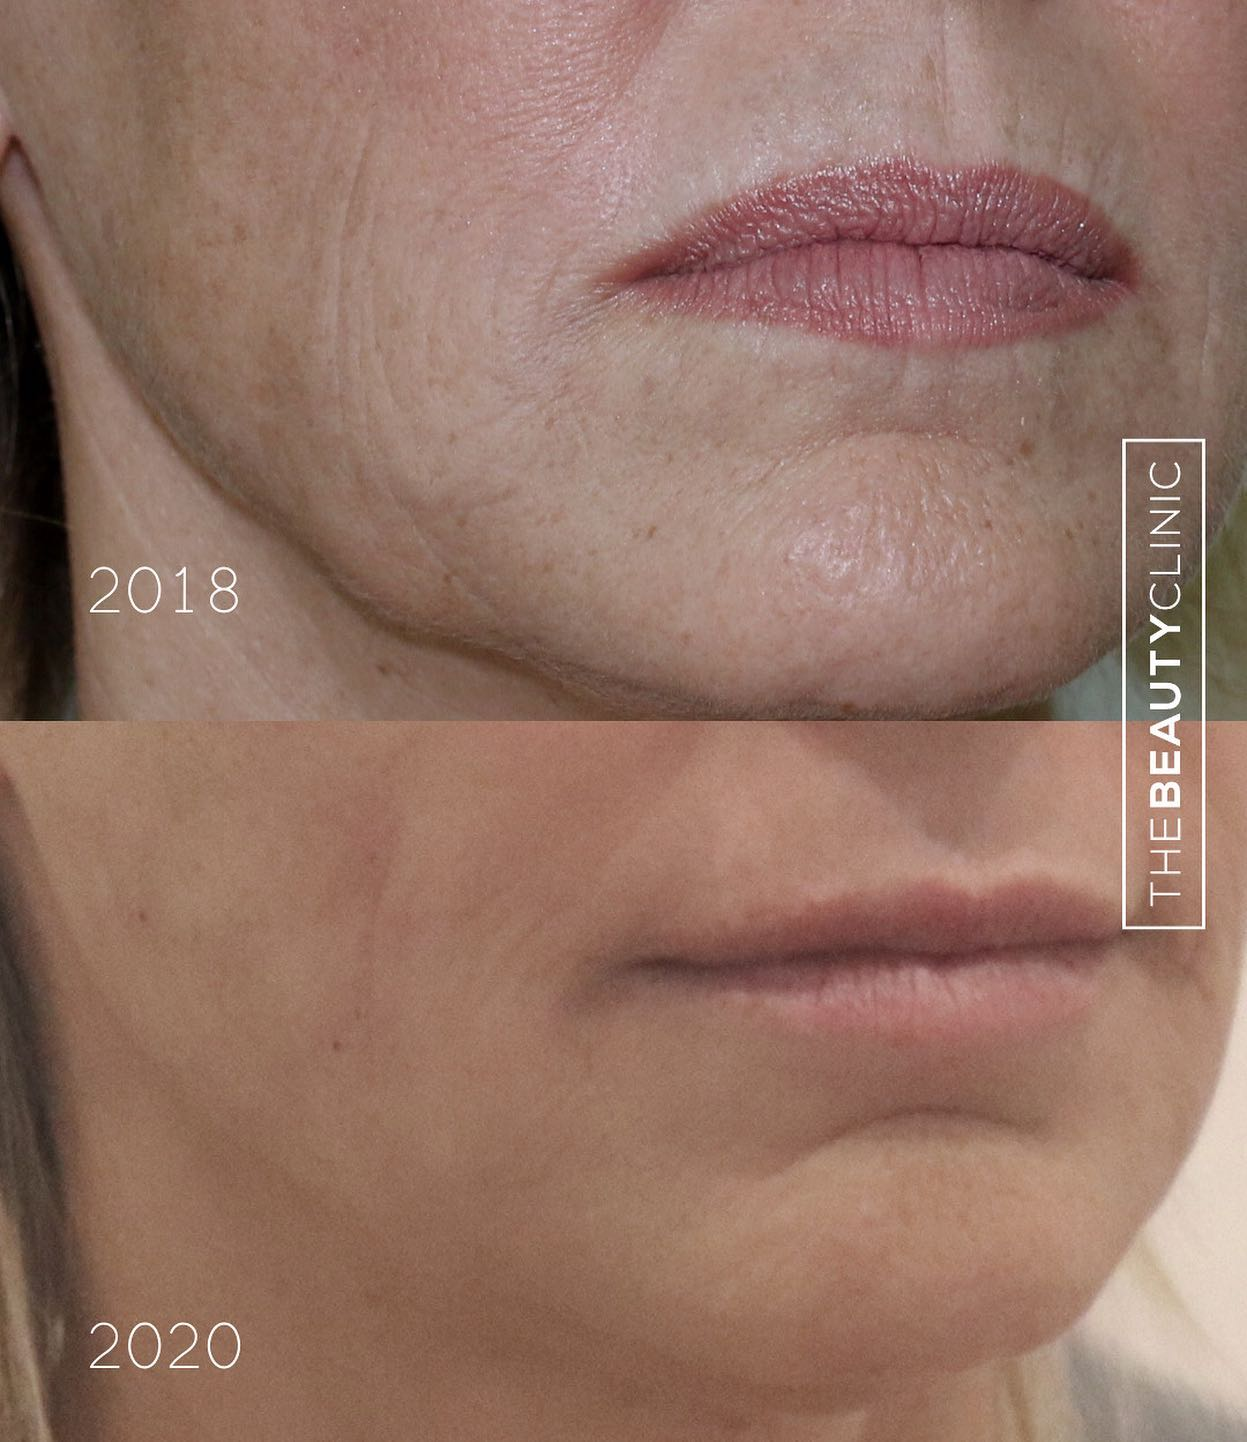 We lose collagen and elastin as we age, and this loss is seen in loose skin, wrinkles, and jowls.